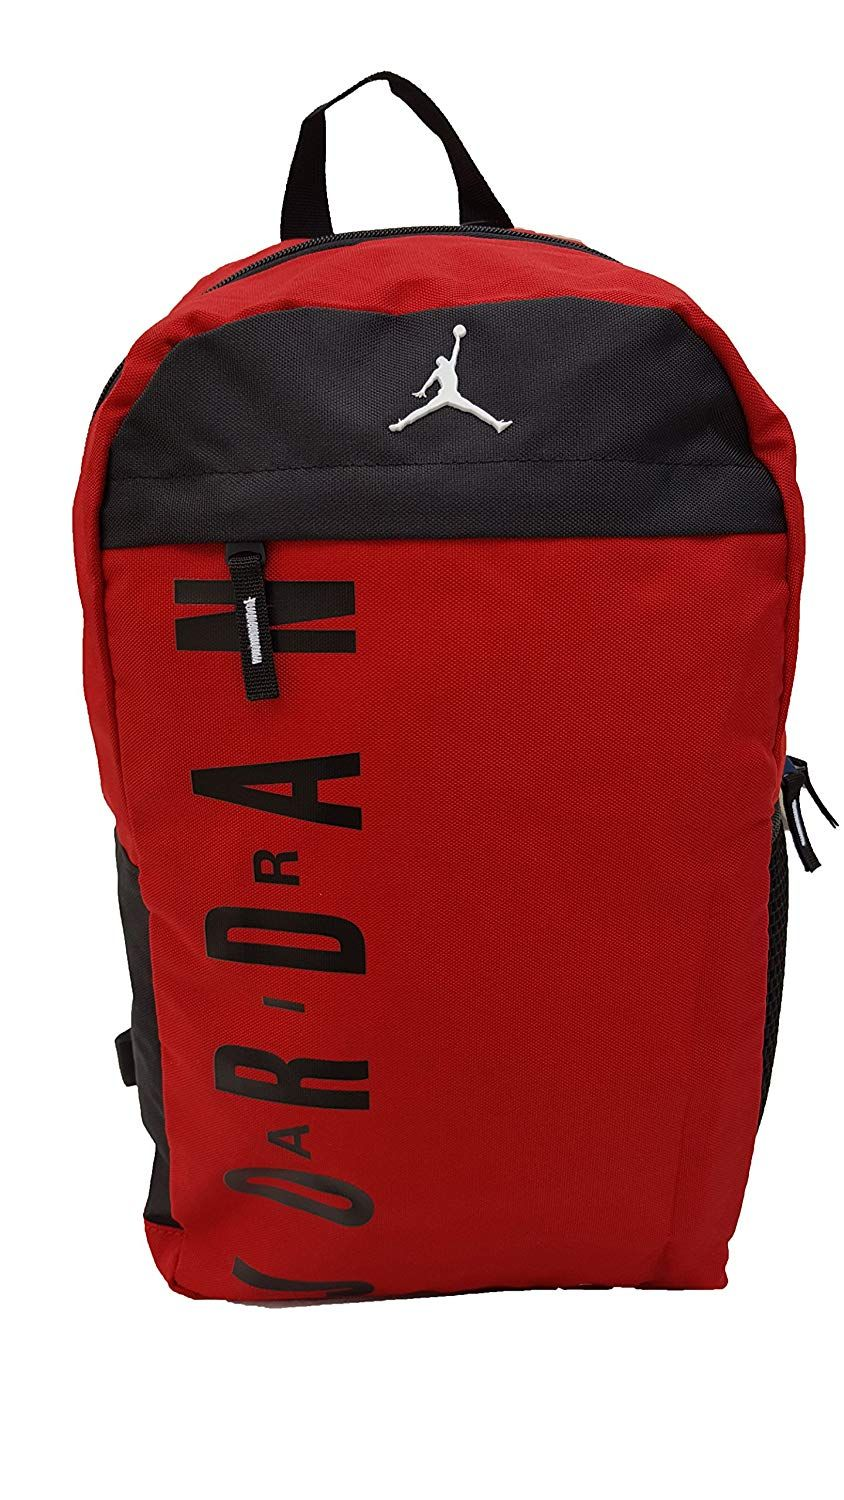 41.37-Nike Jordan Jumpman Youth Backpack (One Size, Gym Red) Jordan Shoes 5bf3903b75